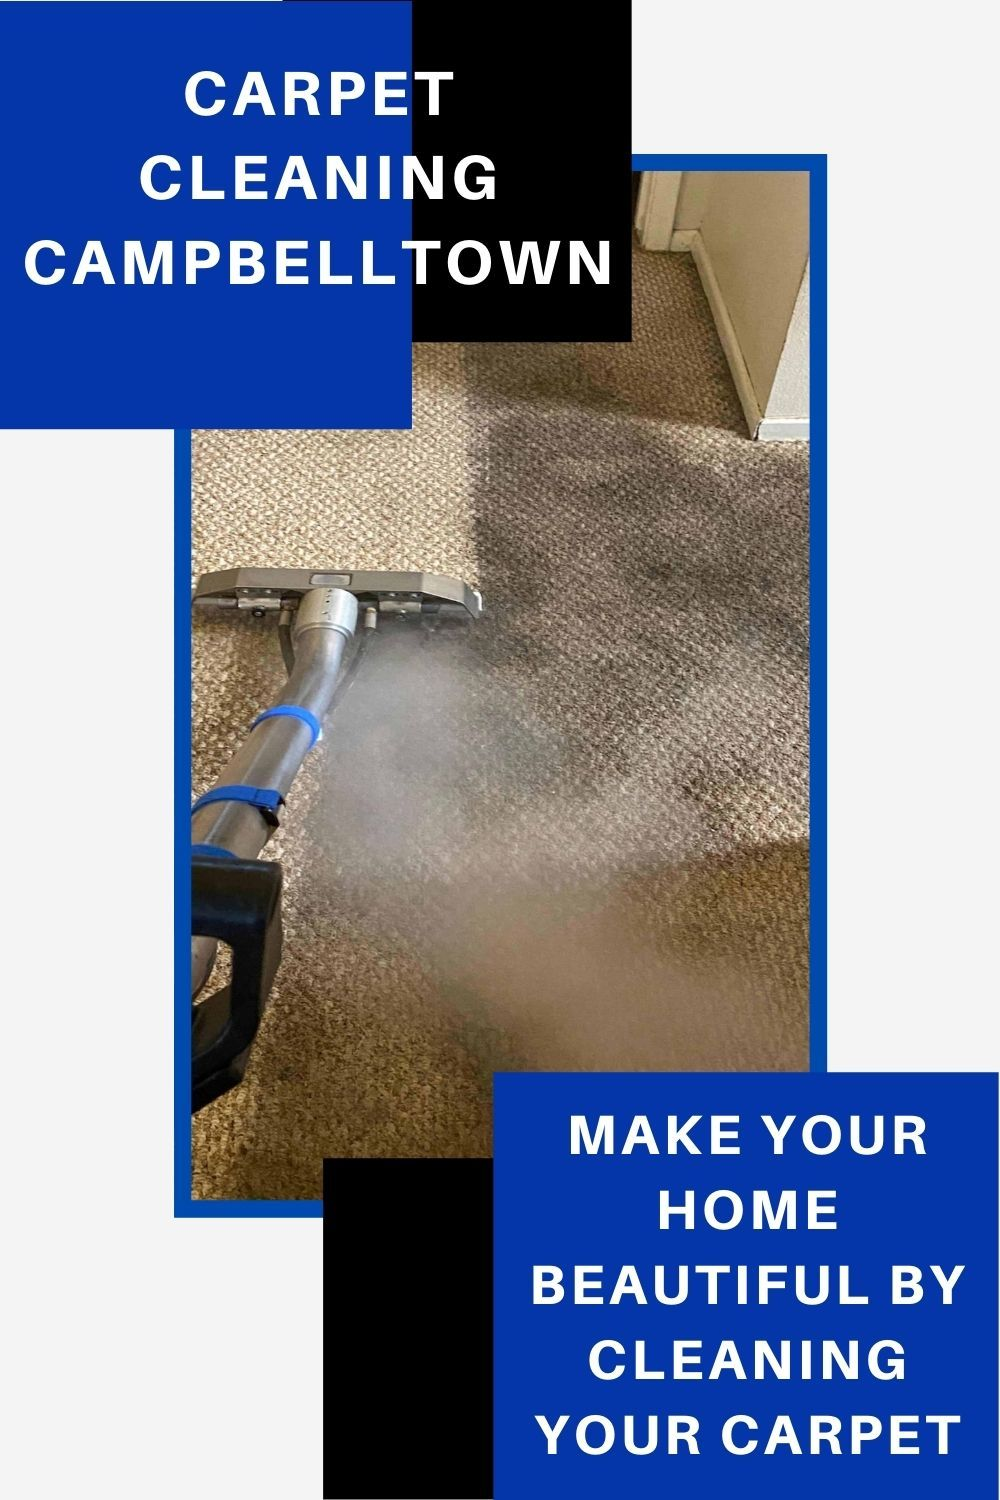 Hire trustworthy carpet cleaning services in Campbelltown. We offer the best services and also cleaners are experienced in our field. We also serve our clients on the weekends also get services on the same day cleaning services. So contact us online. #carpetcleaningservice #carpetcleaning #carpetcleaner #housecleaning #clean #officecleaning #campbelltown